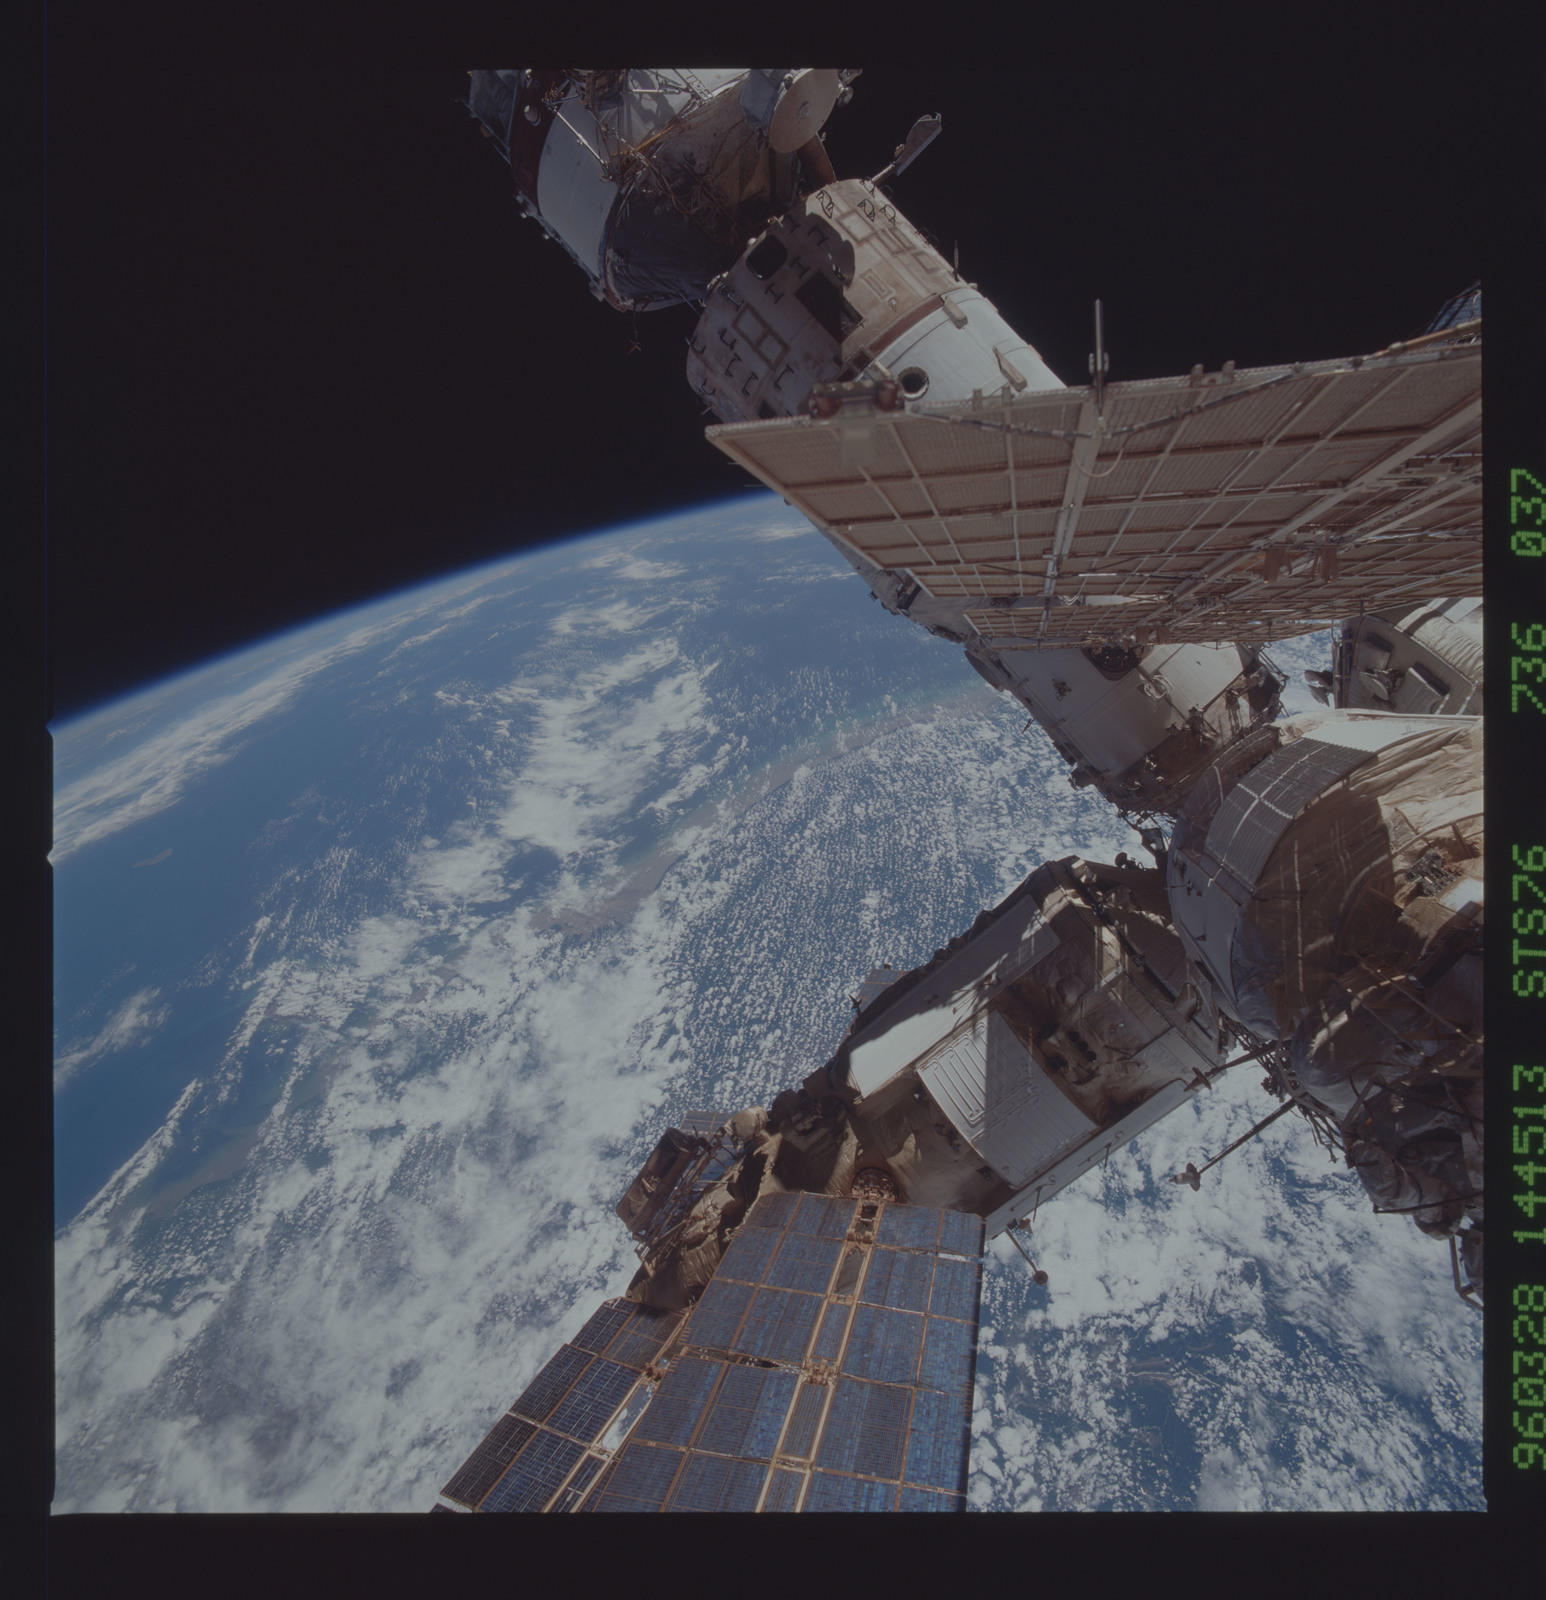 STS076-736-037 - STS-076 - Mir Space Station views taken during STS-76 mission